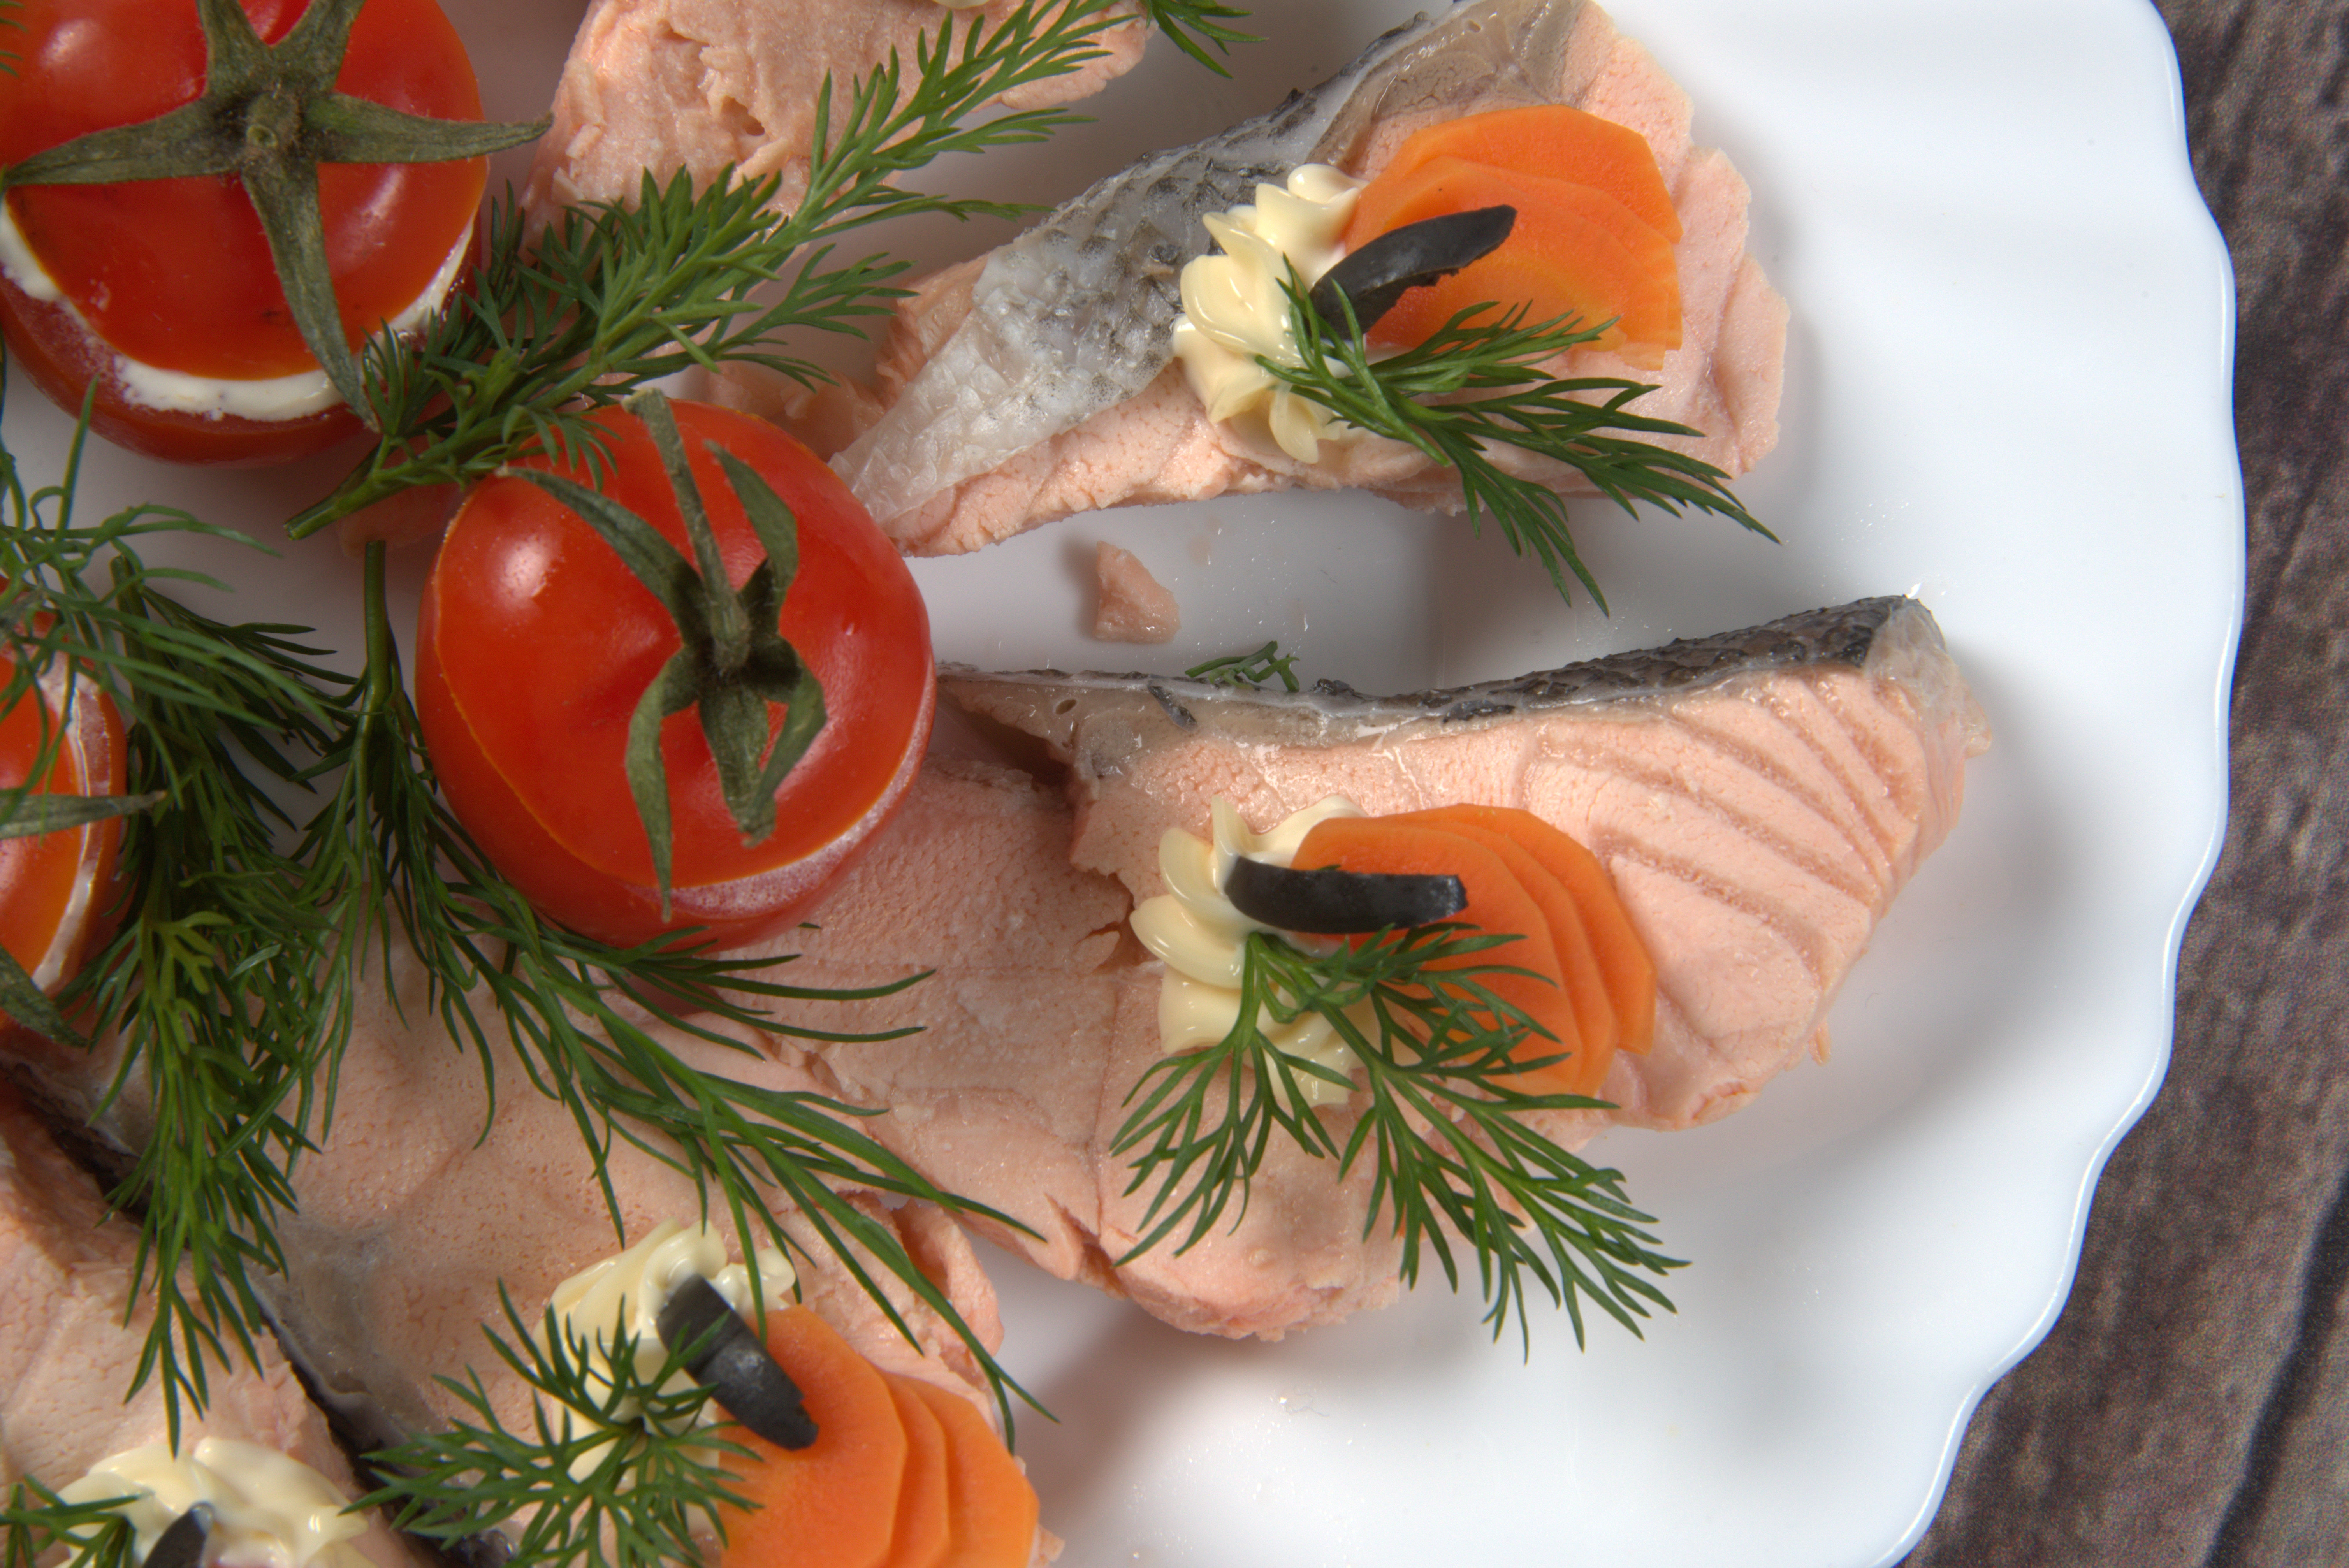 Grono s.c. - Catering